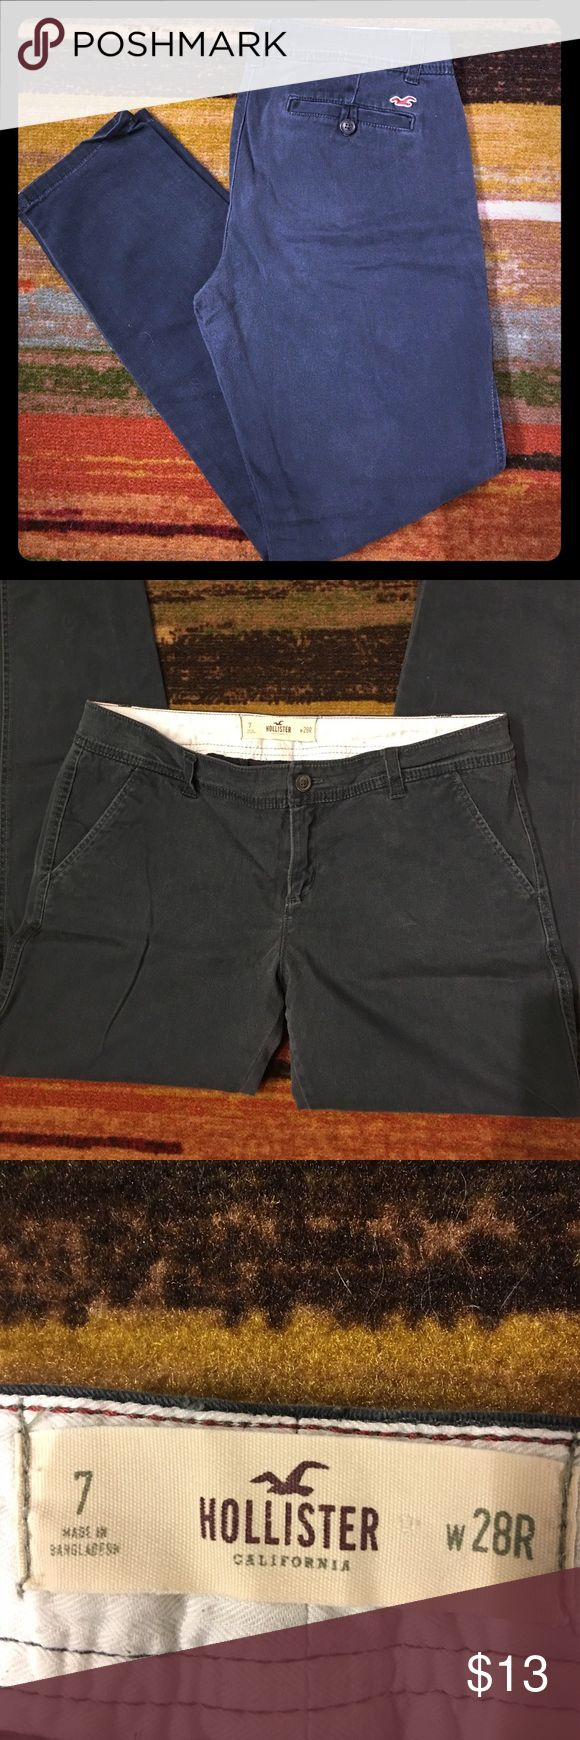 Hollister pants Navy blue hollister pants, no stains, holes or rips, all belt loops attached Hollister Pants Trousers